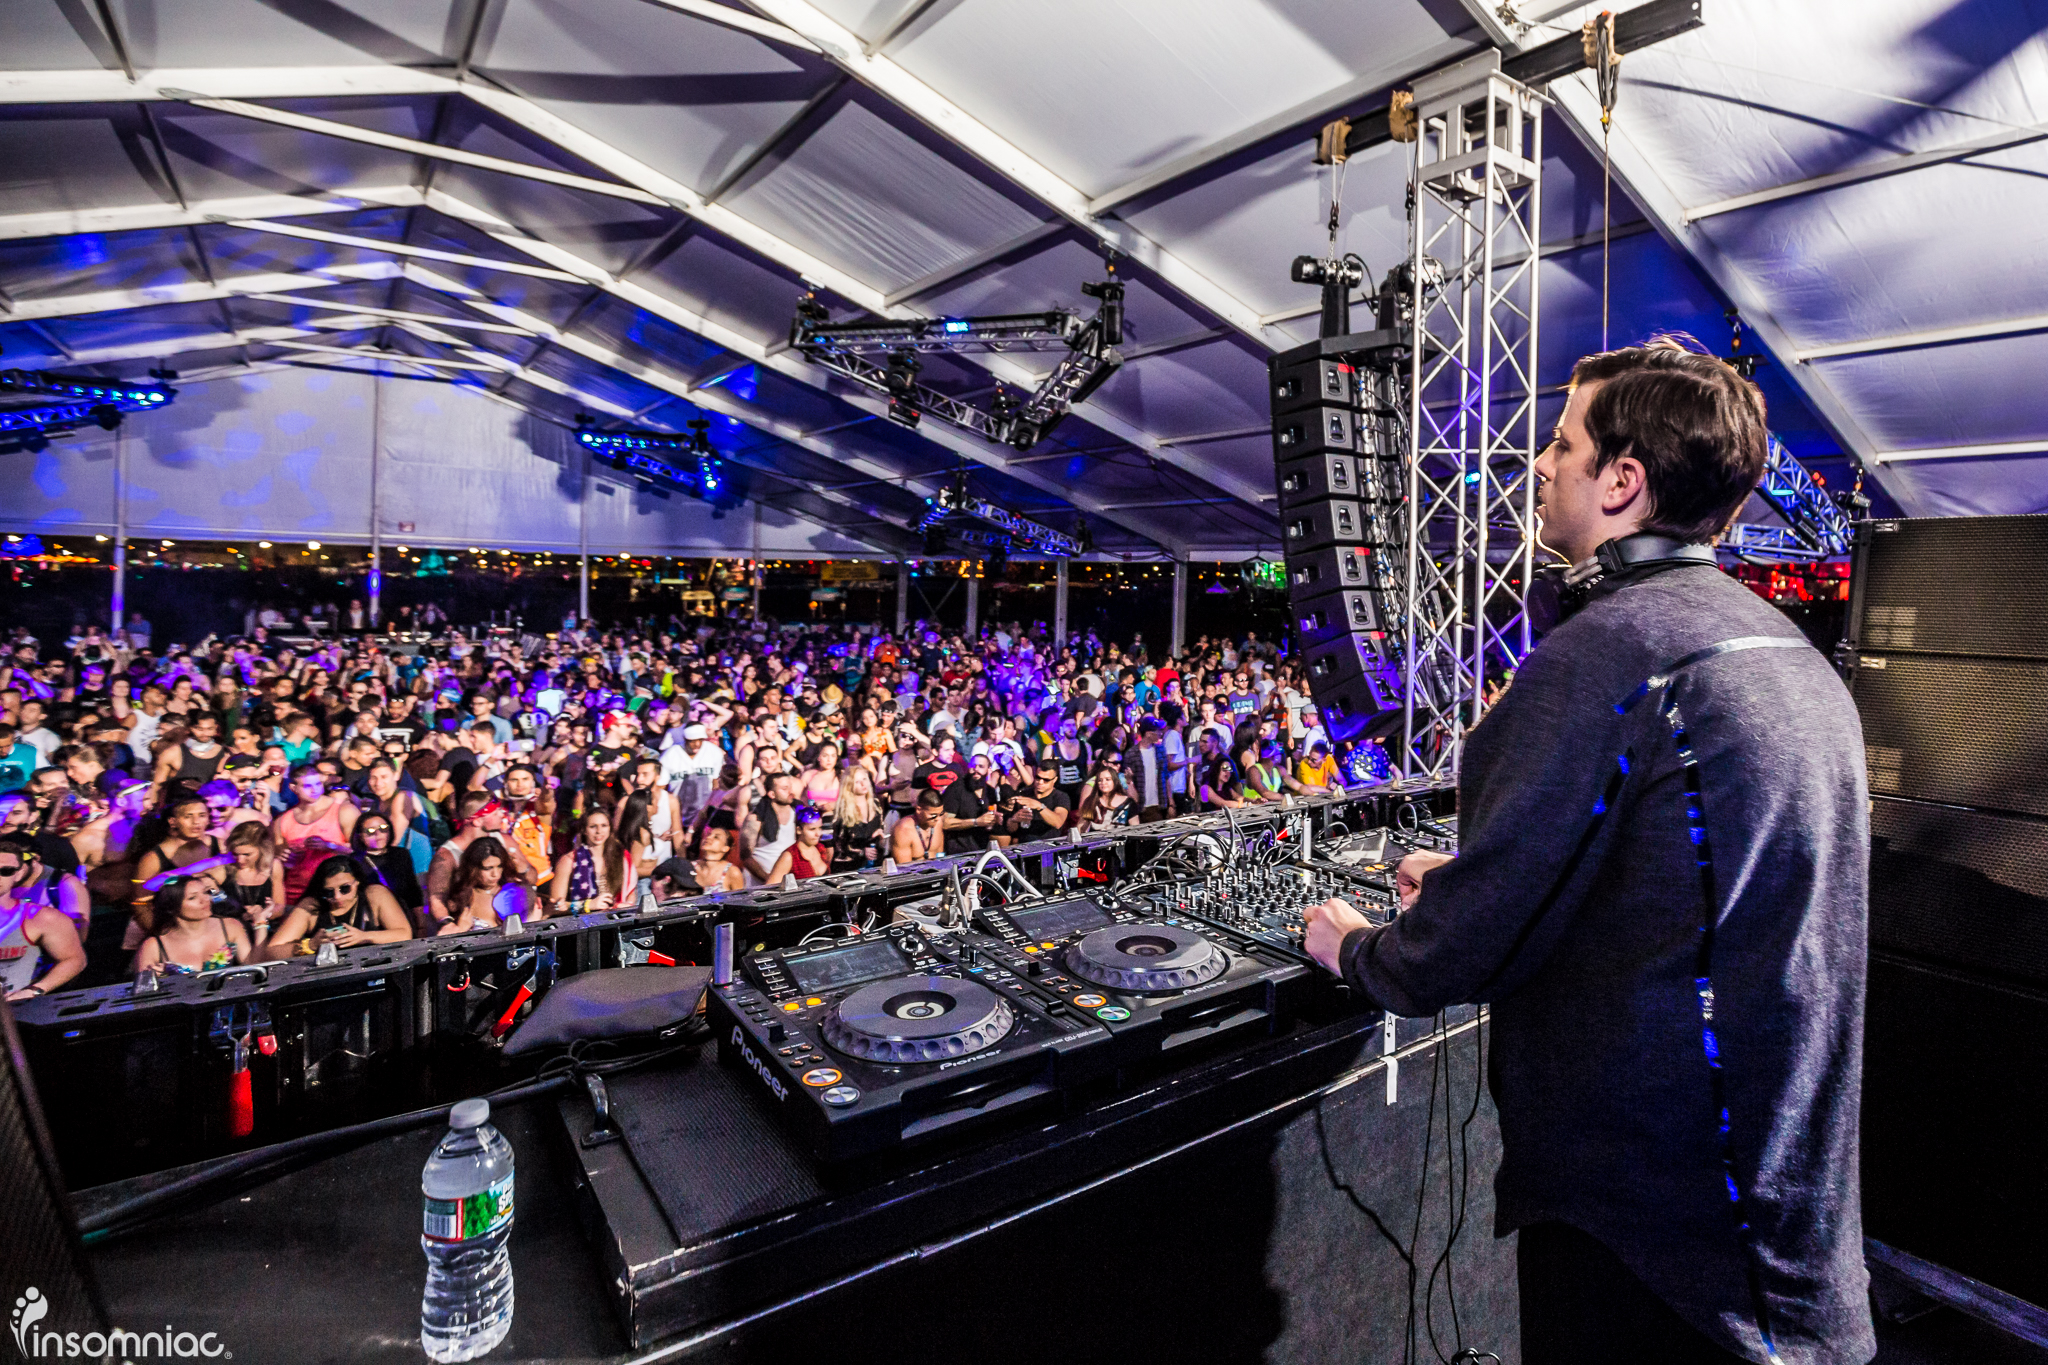 EDCNY_2015_iWally_aLIVECoverage-20.jpg